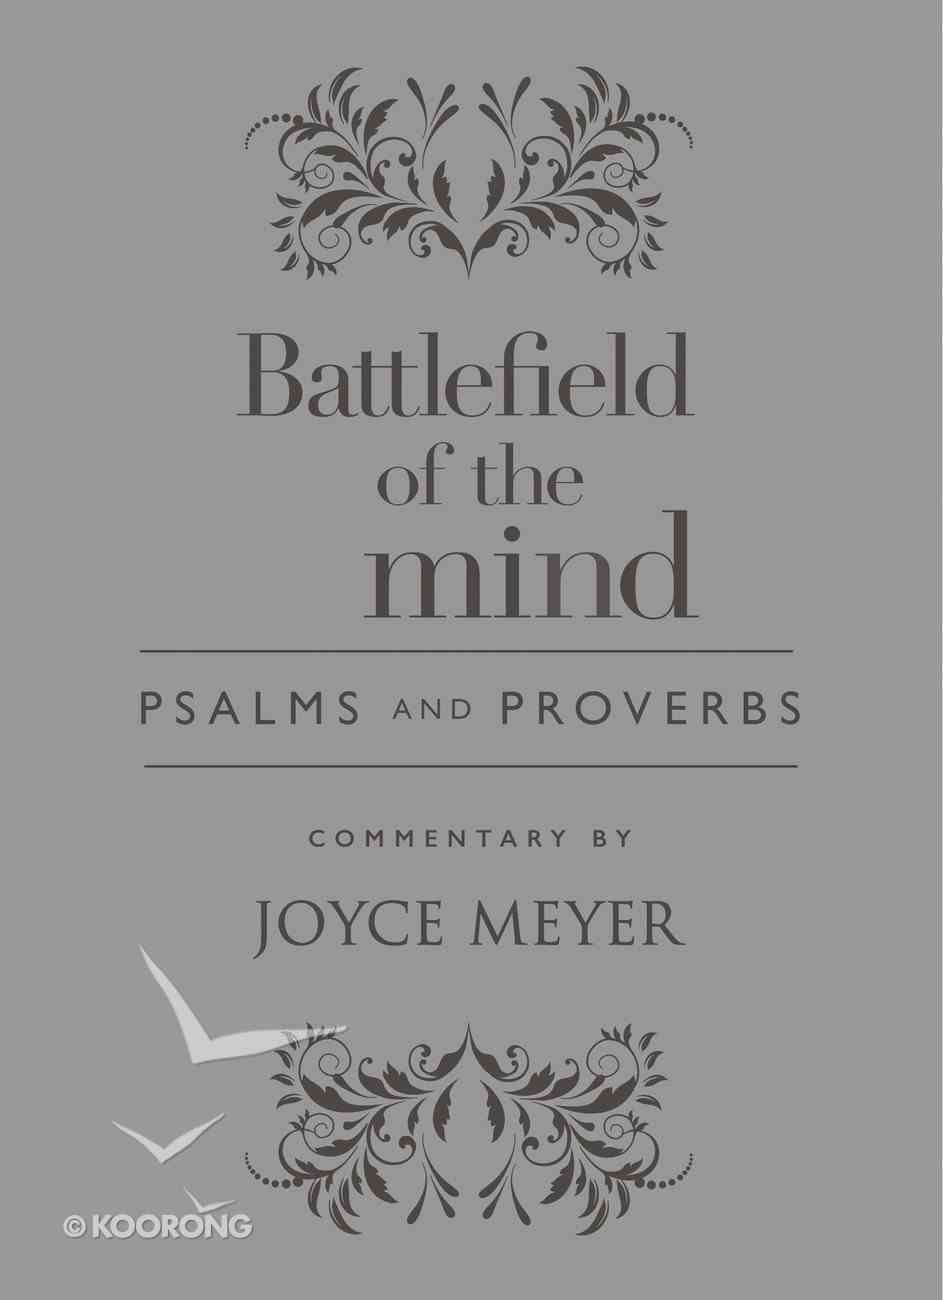 Amplified Battlefield of the Mind Psalms and Proverbs eBook